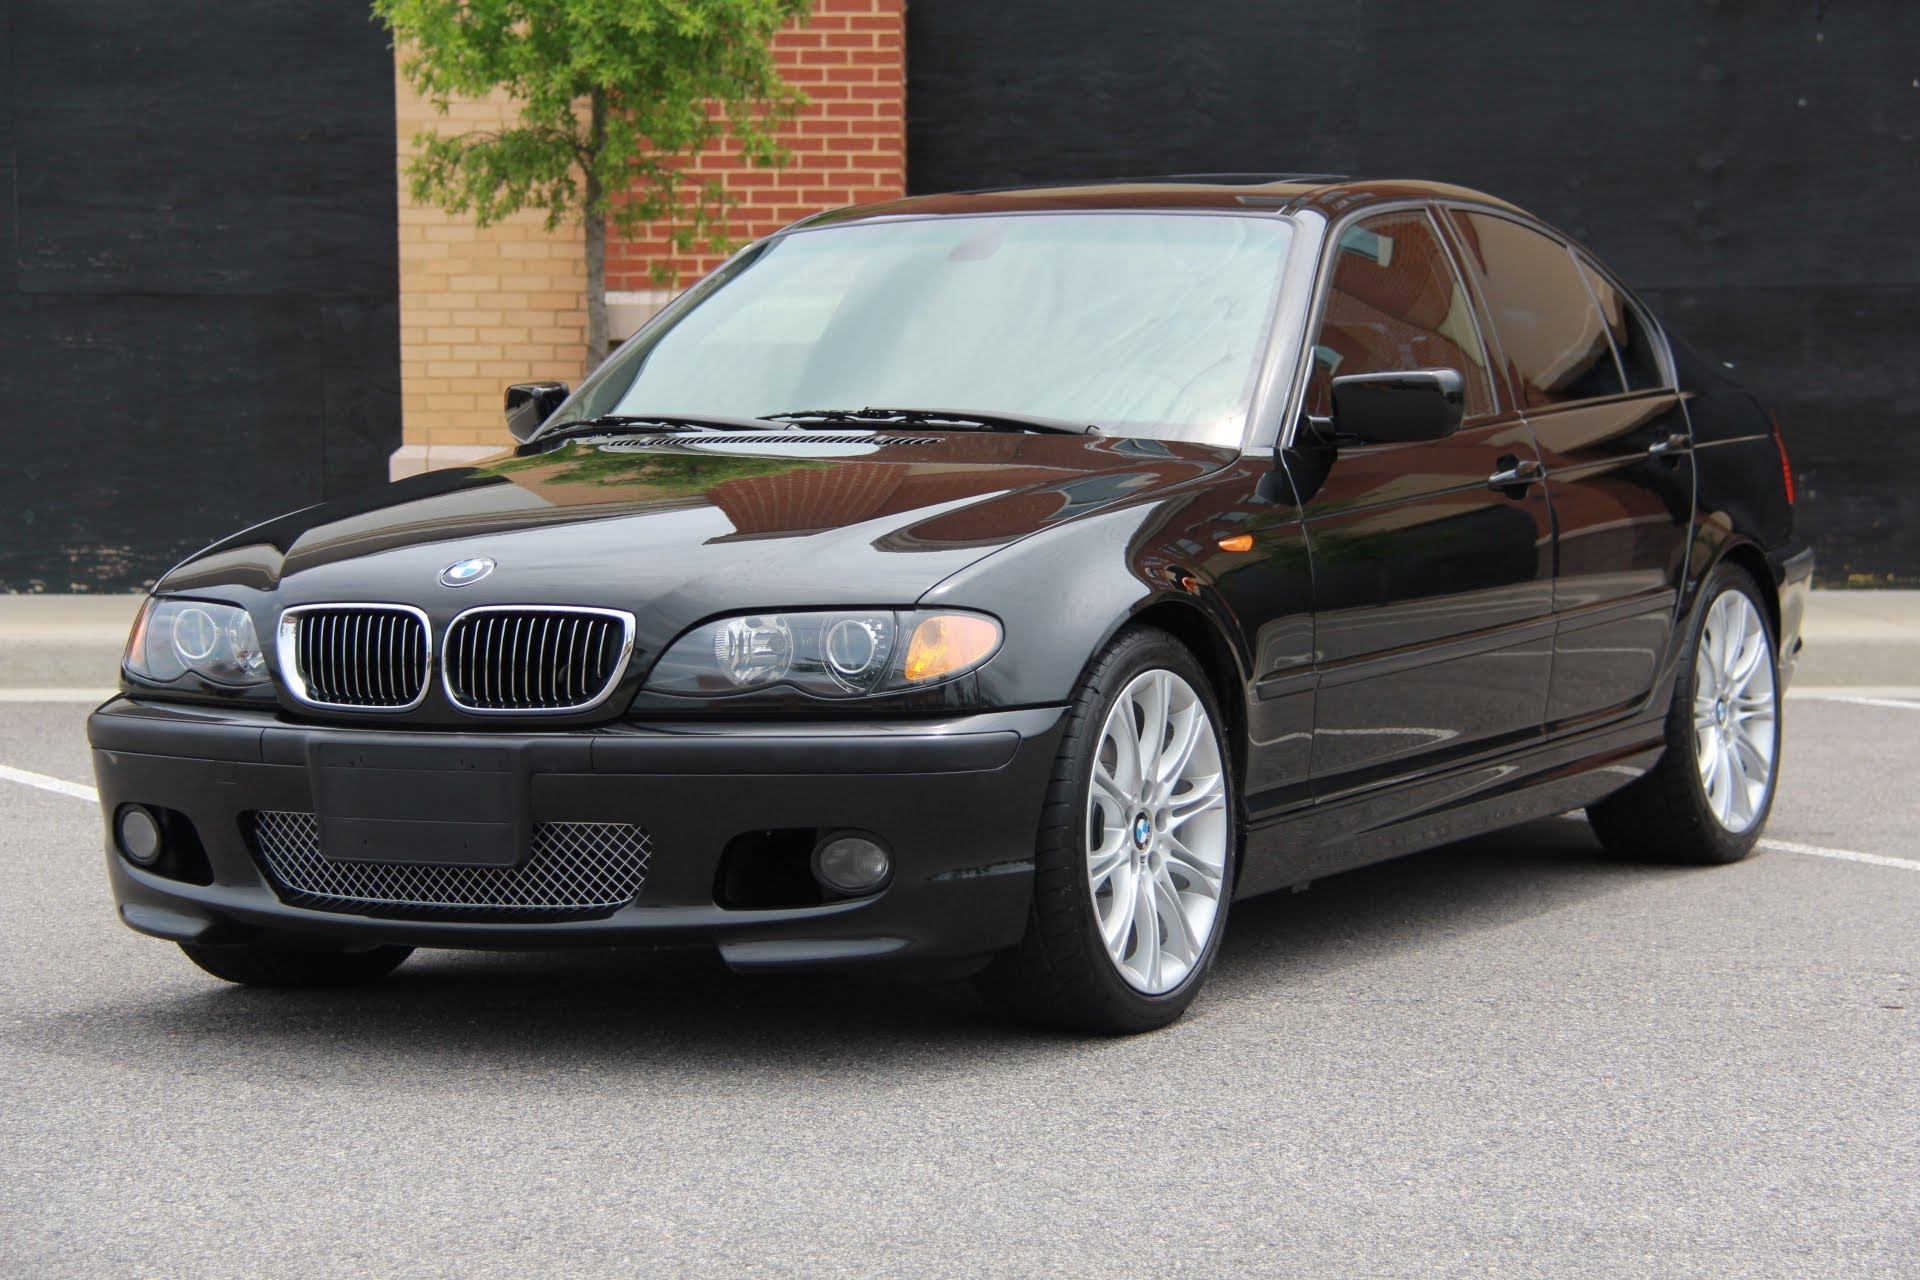 2005 bmw 330i zhp performance package used cars powhatan virginia 2013 07 21 youtube